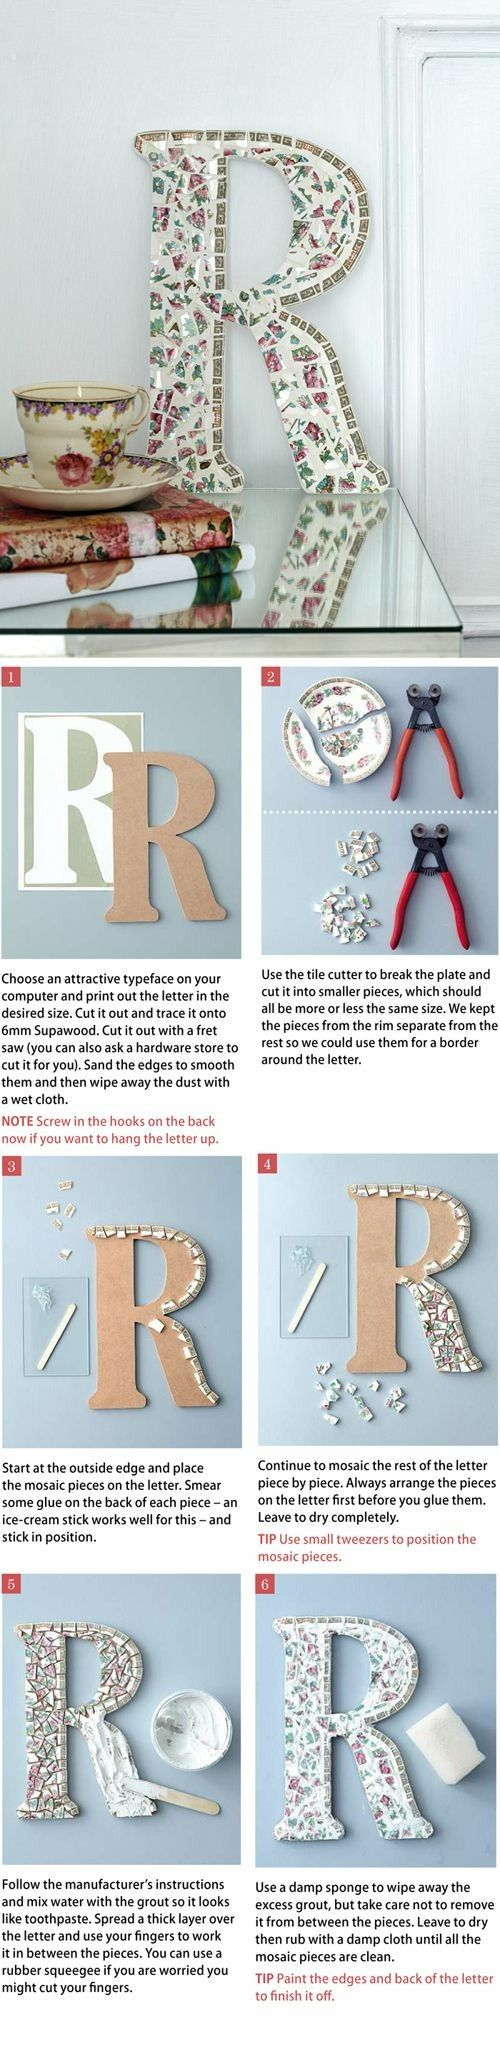 DIY monogram letters, Crafts to Make and Sell, monogram letters, monogram wall decor, monogram letters for wall, monogram wall art, monogram letter crafts, monogram ideas, letters decor, monogram letters decor, letters diy, Mary Tardito channel, DIY Hobby